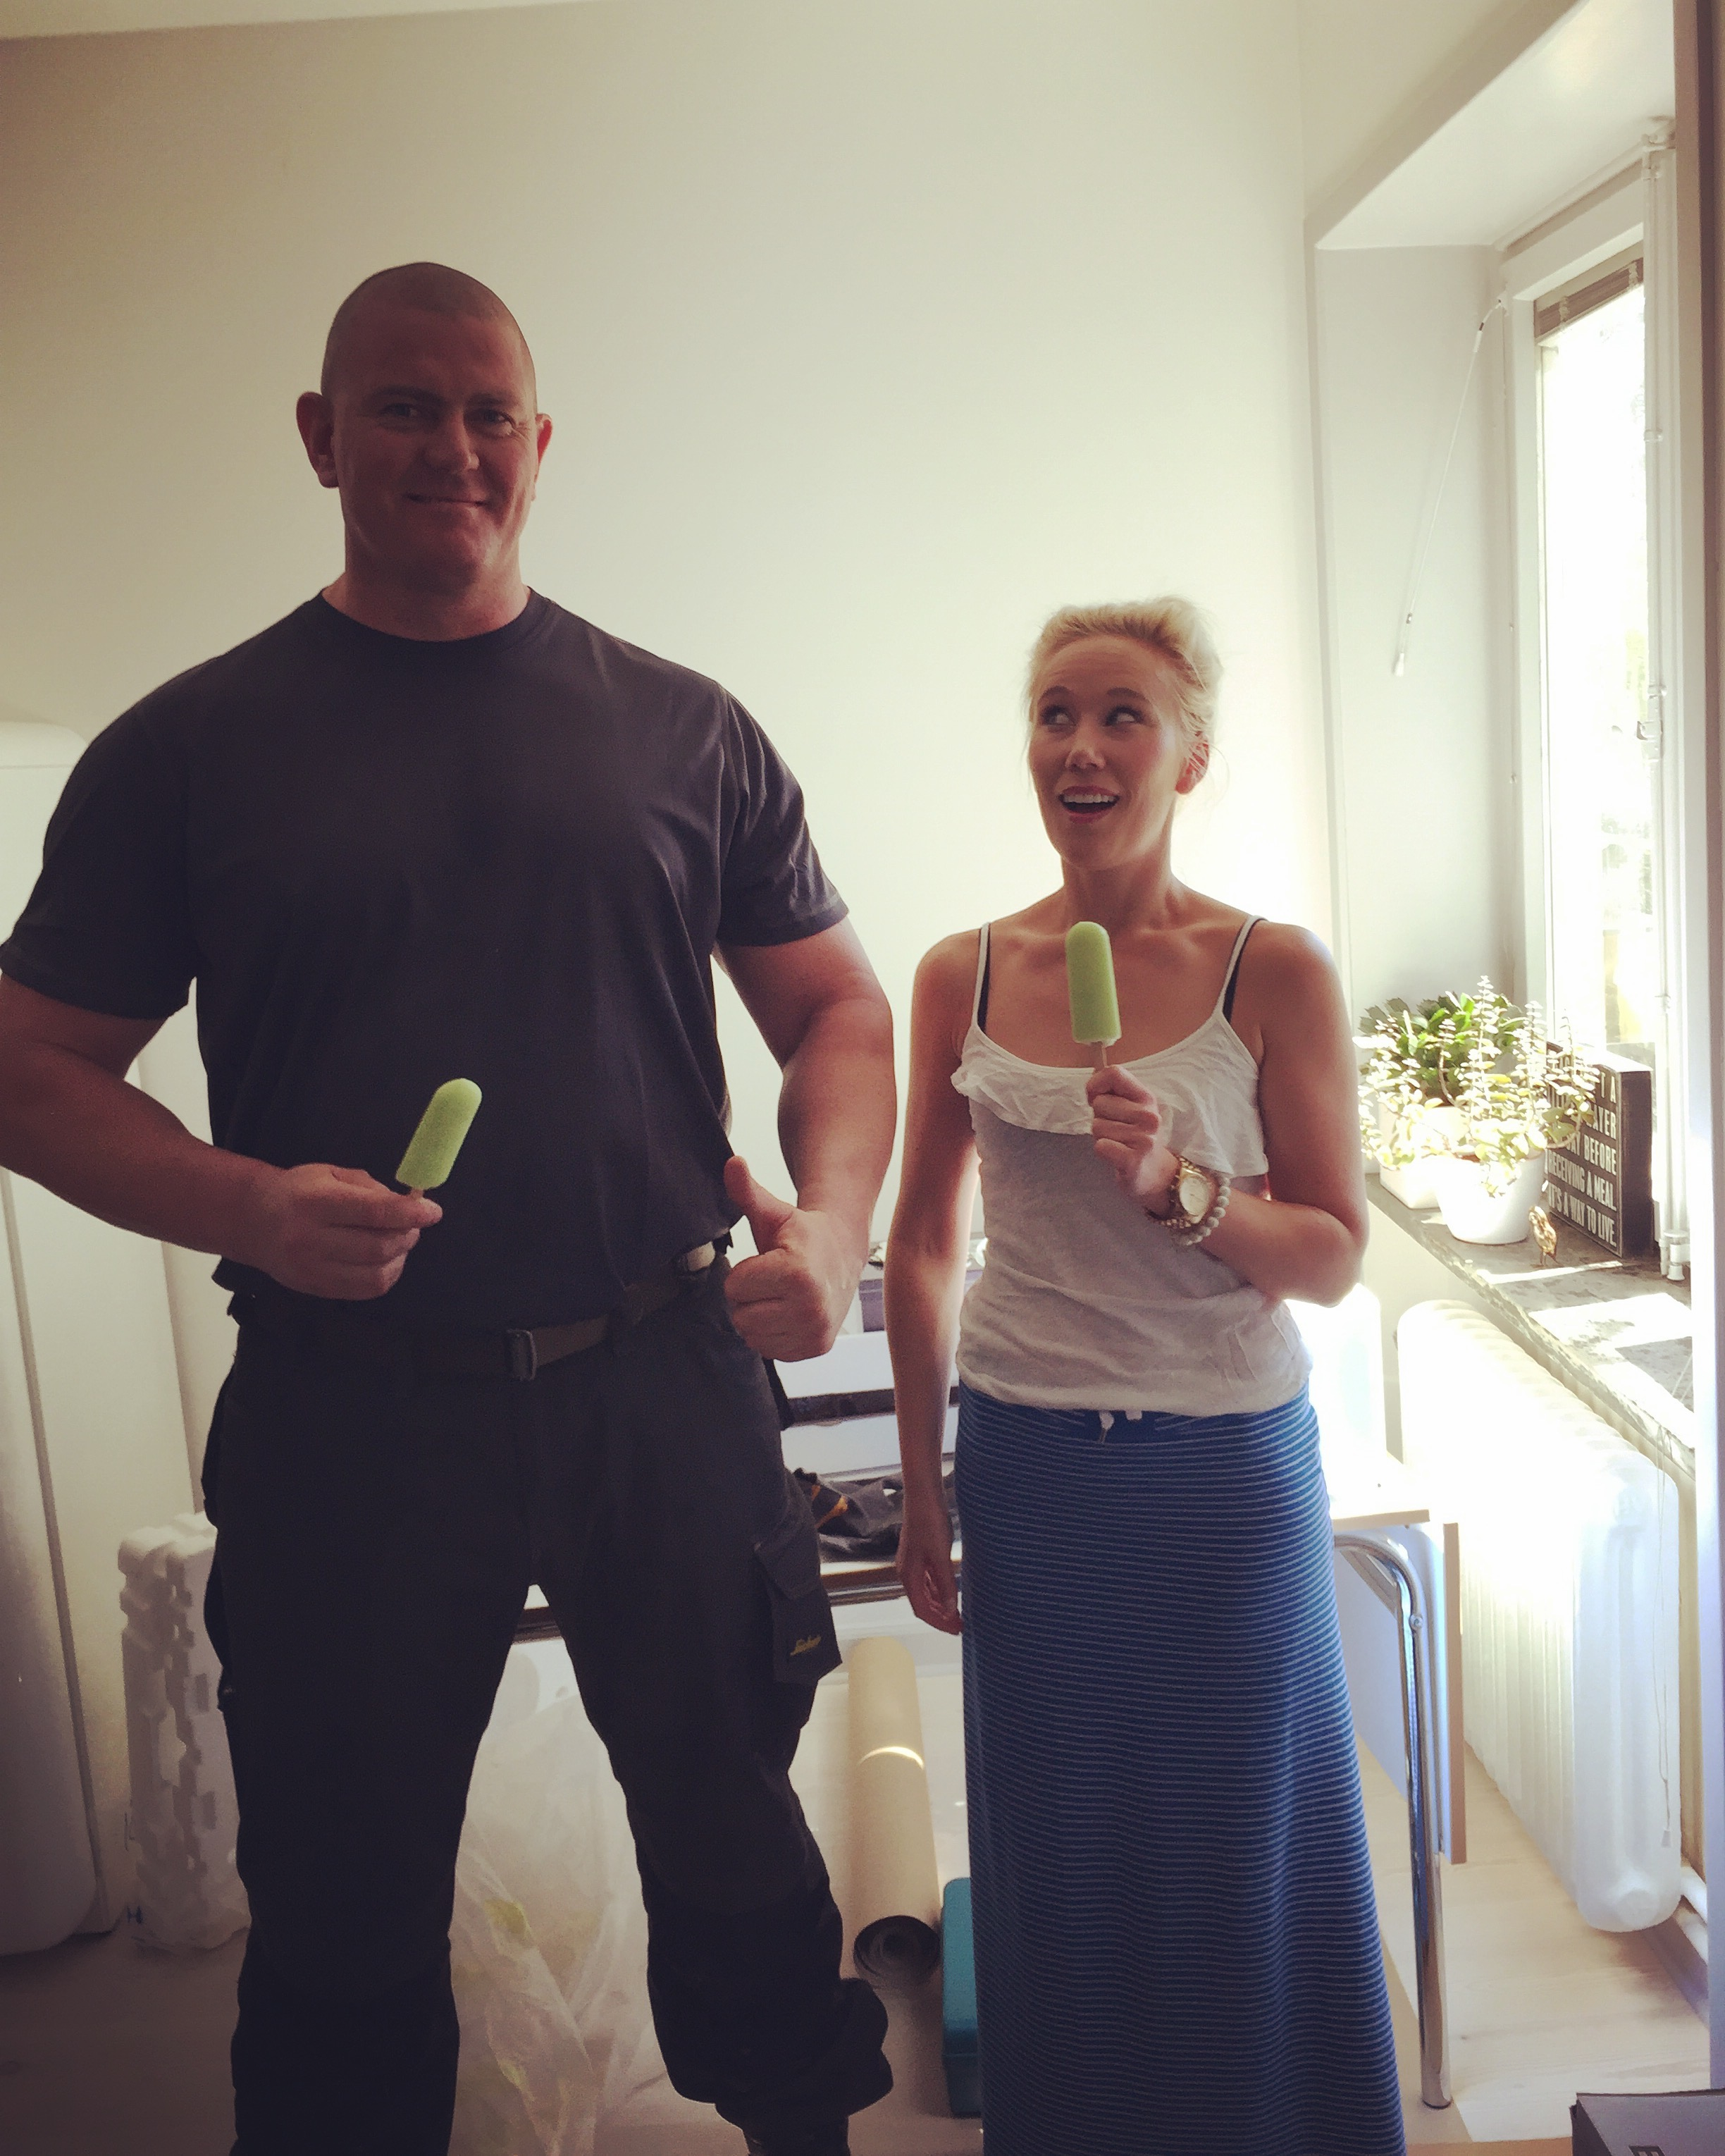 Biggest man I ever met. Yes, he used to be in the military but now works with kitchen countertops. Those muscles could come in pretty handy with all that lifting!